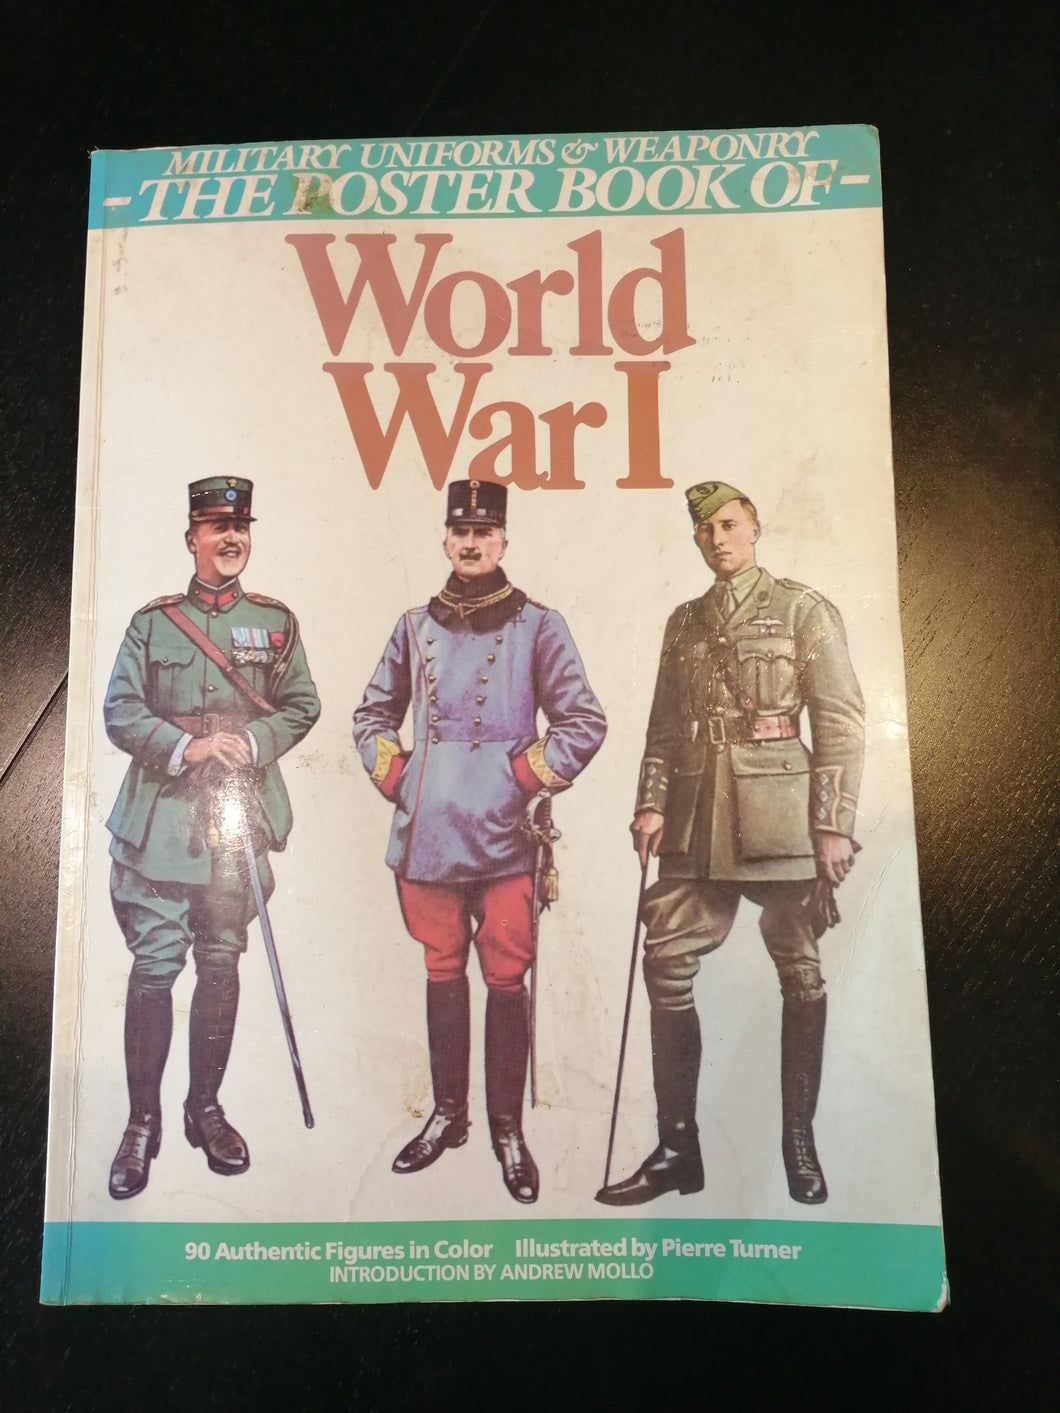 British Uniforms & Weaponry: The Poster Book of World War I by Richard Graves & Crispin Goodall